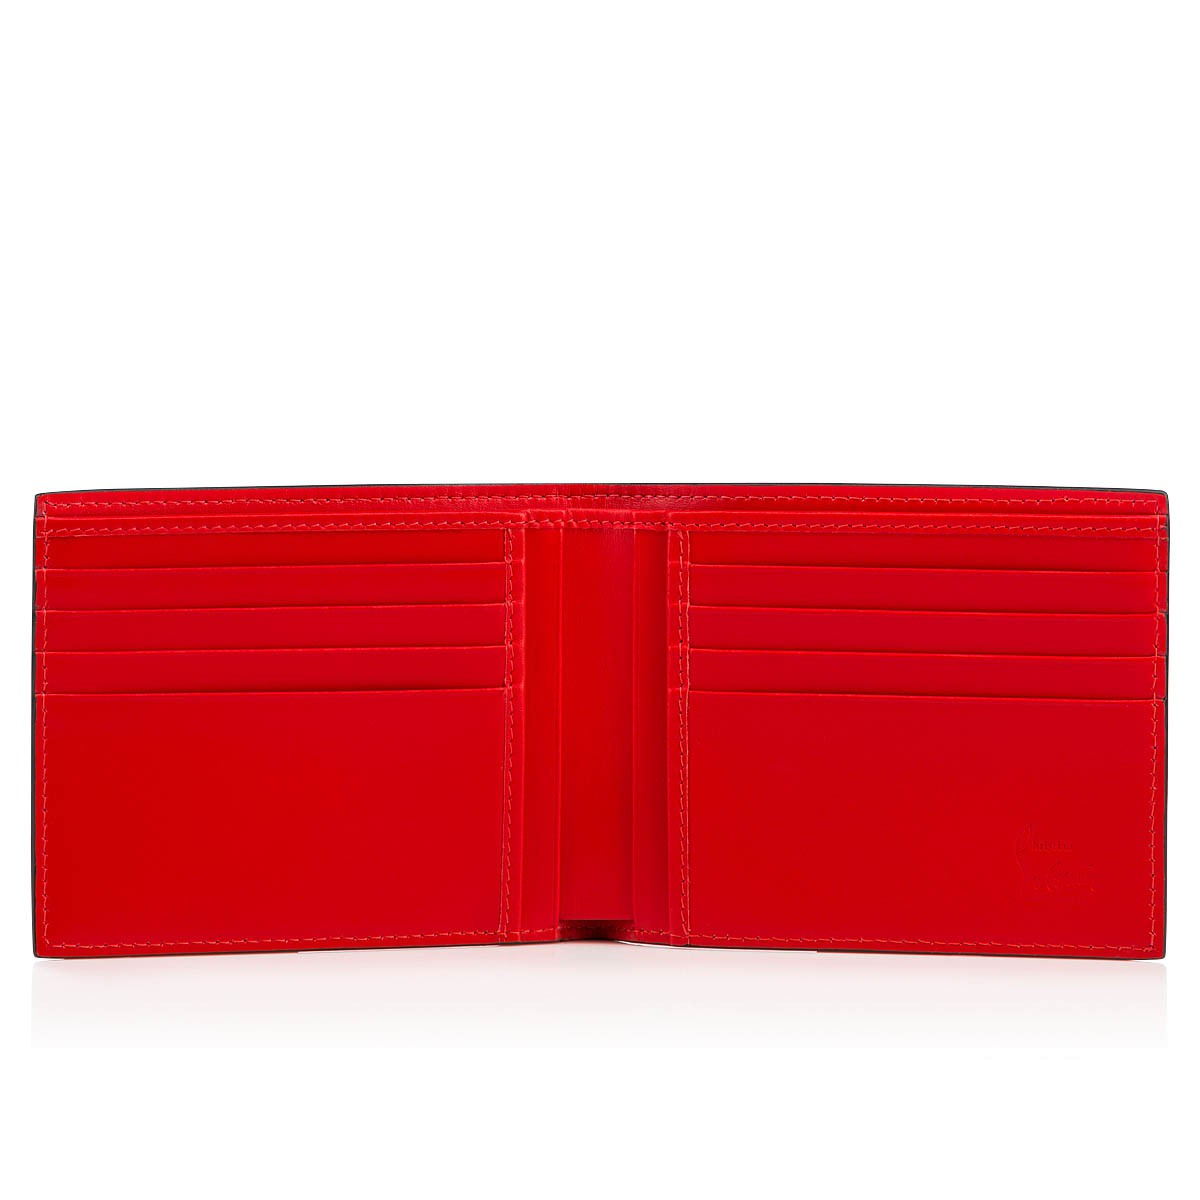 スモールレザーグッズ - Coolcard Wallet - Christian Louboutin